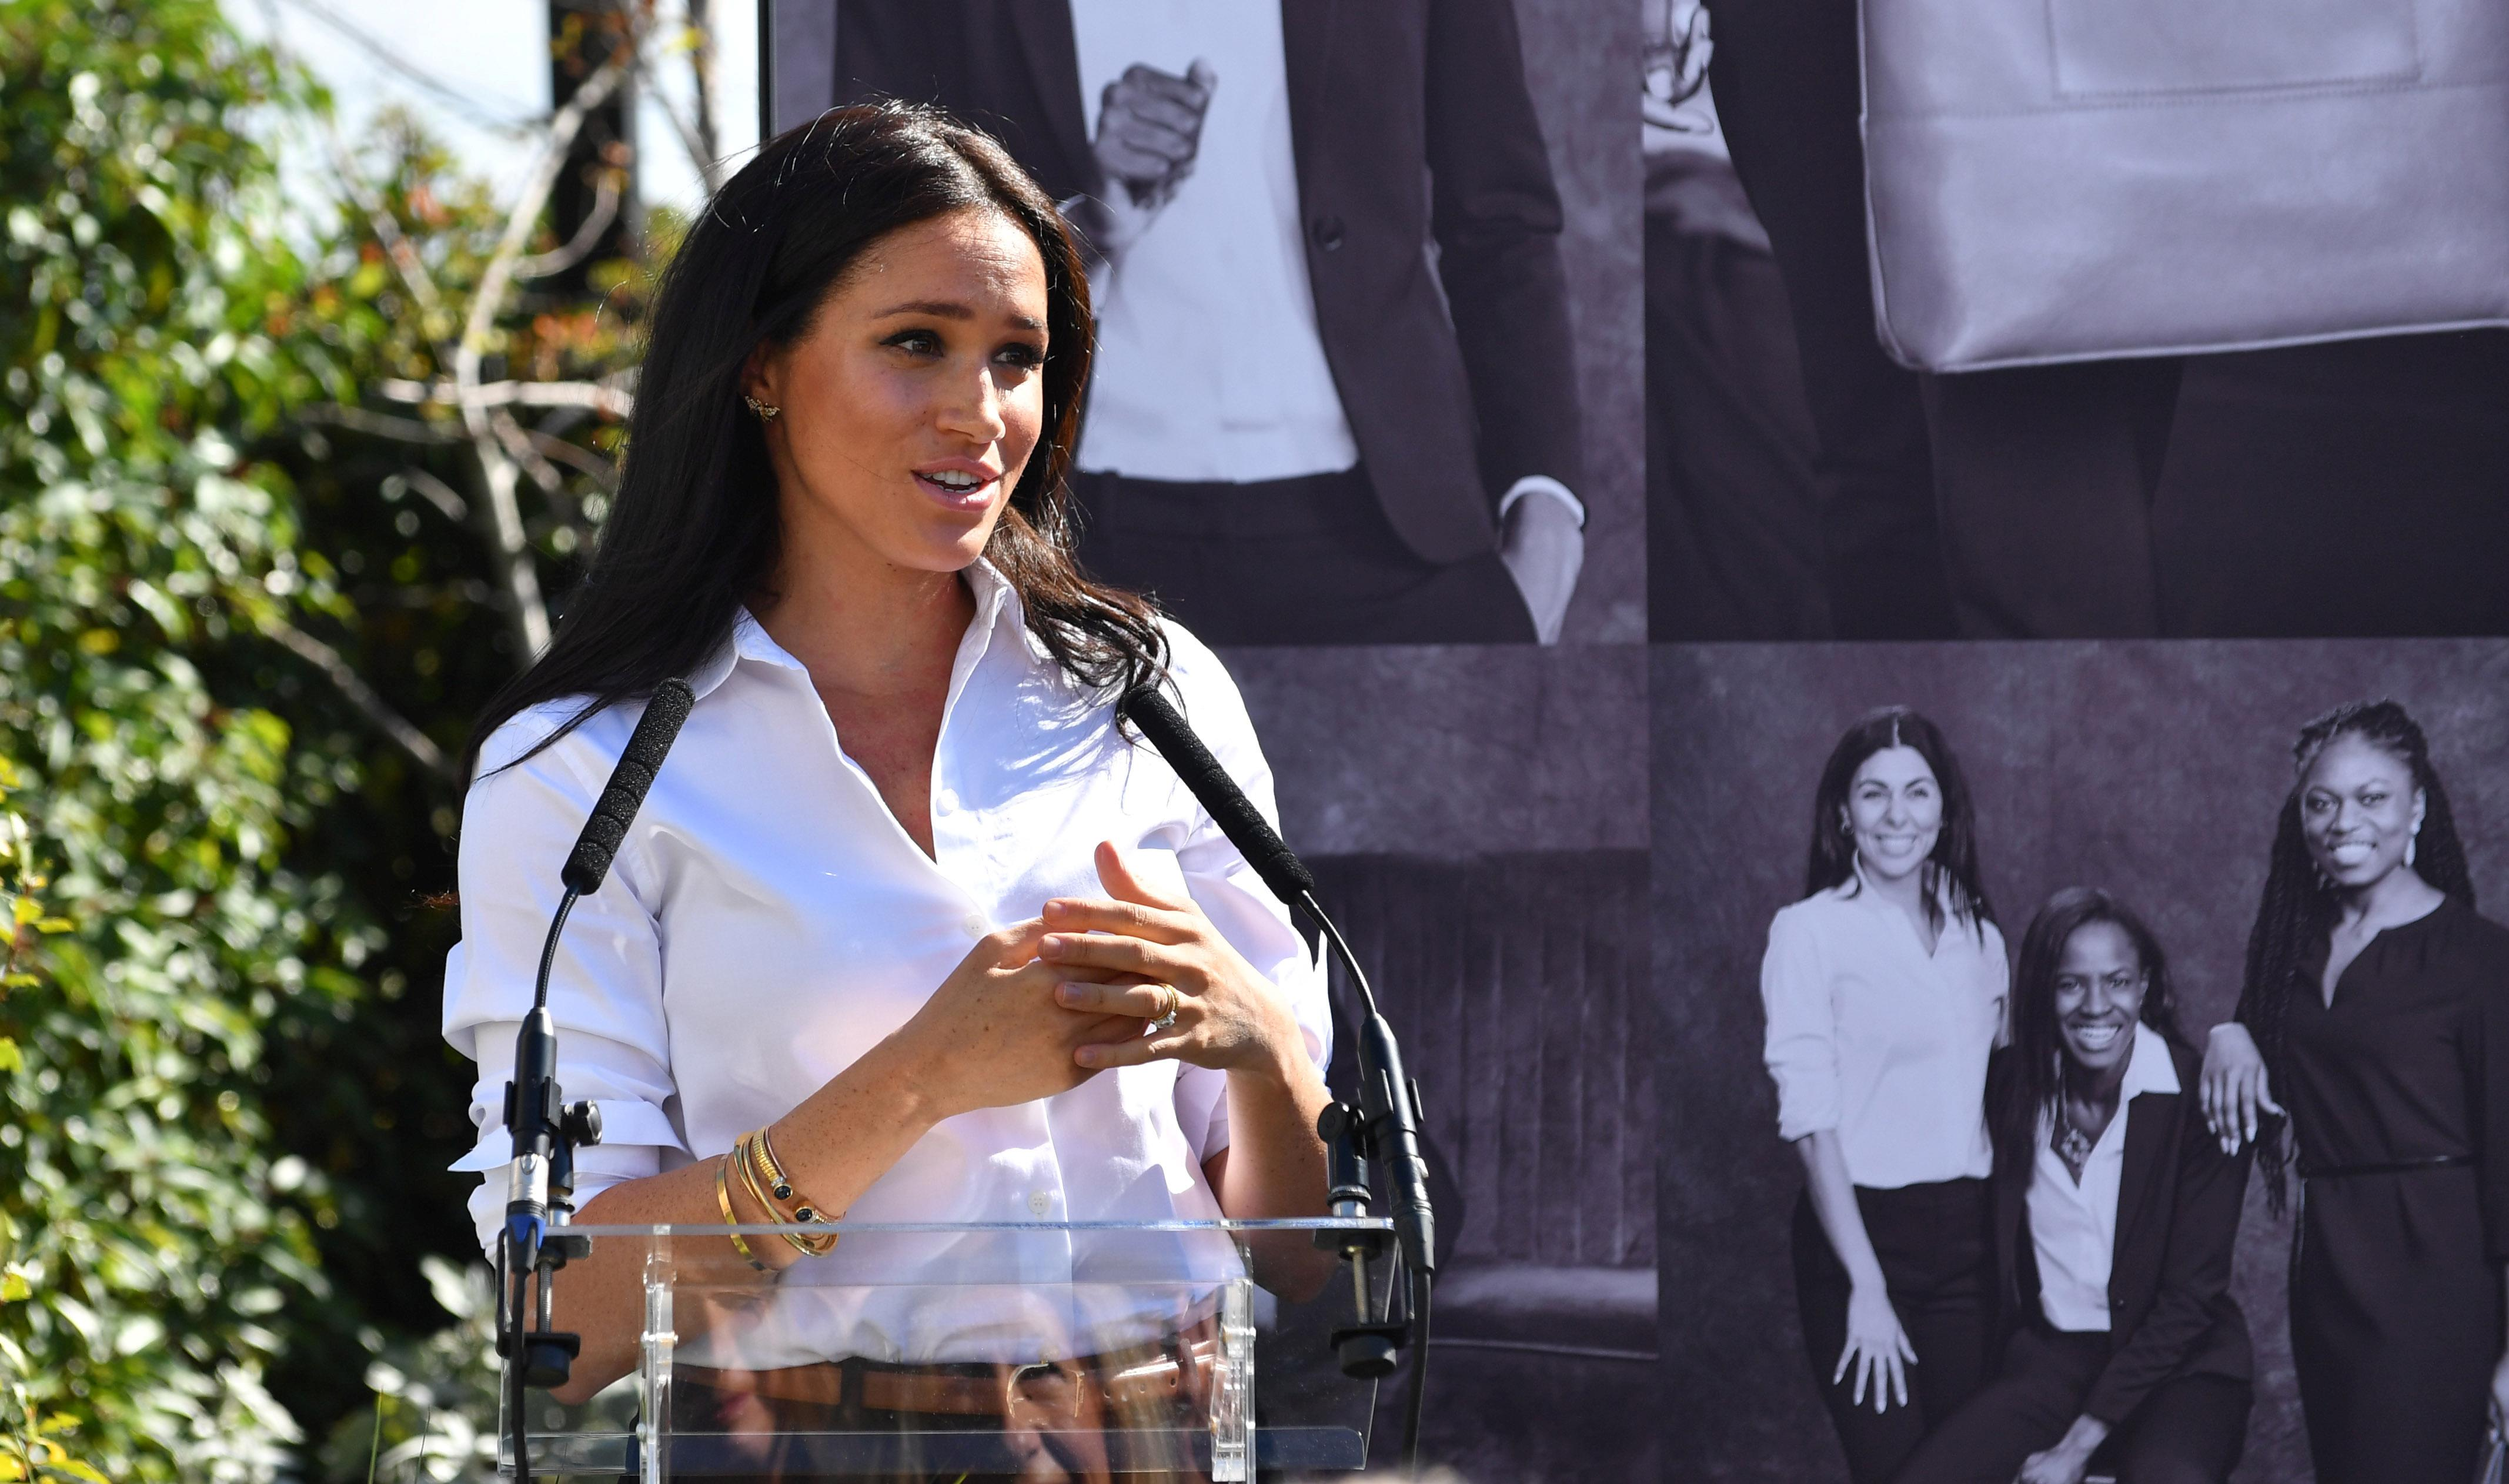 Britain's Meghan, Duchess of Sussex, attends the launching of the Smart Works capsule collection in London, Britain September 12, 2019. Mark Large/Pool via REUTERS